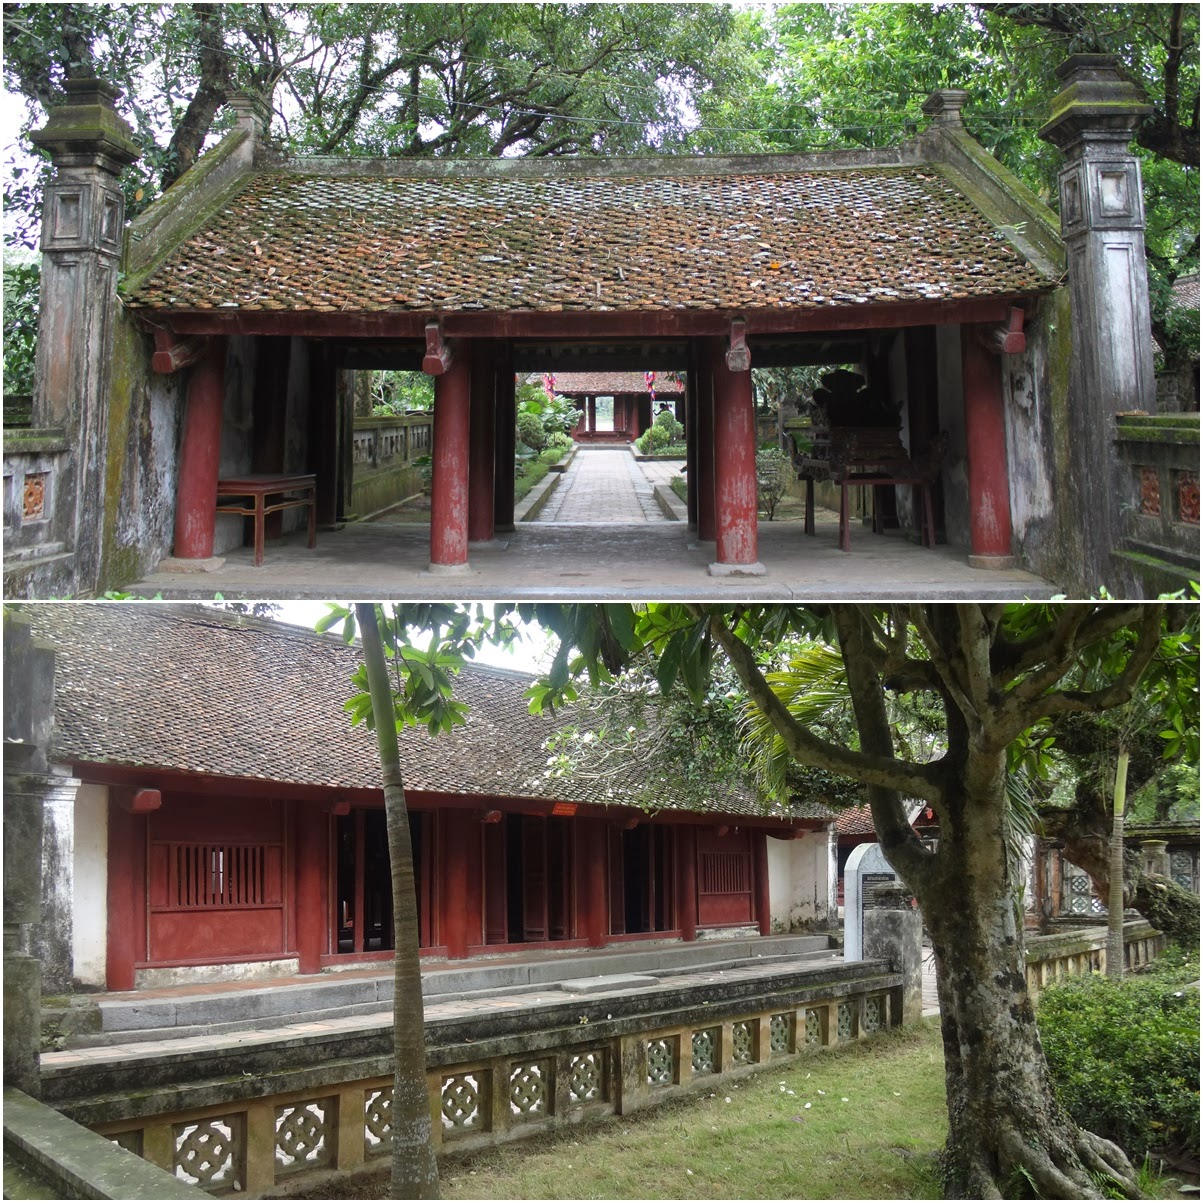 The unique historical Chinese building structure around Hoa Lu capital in Vietnam